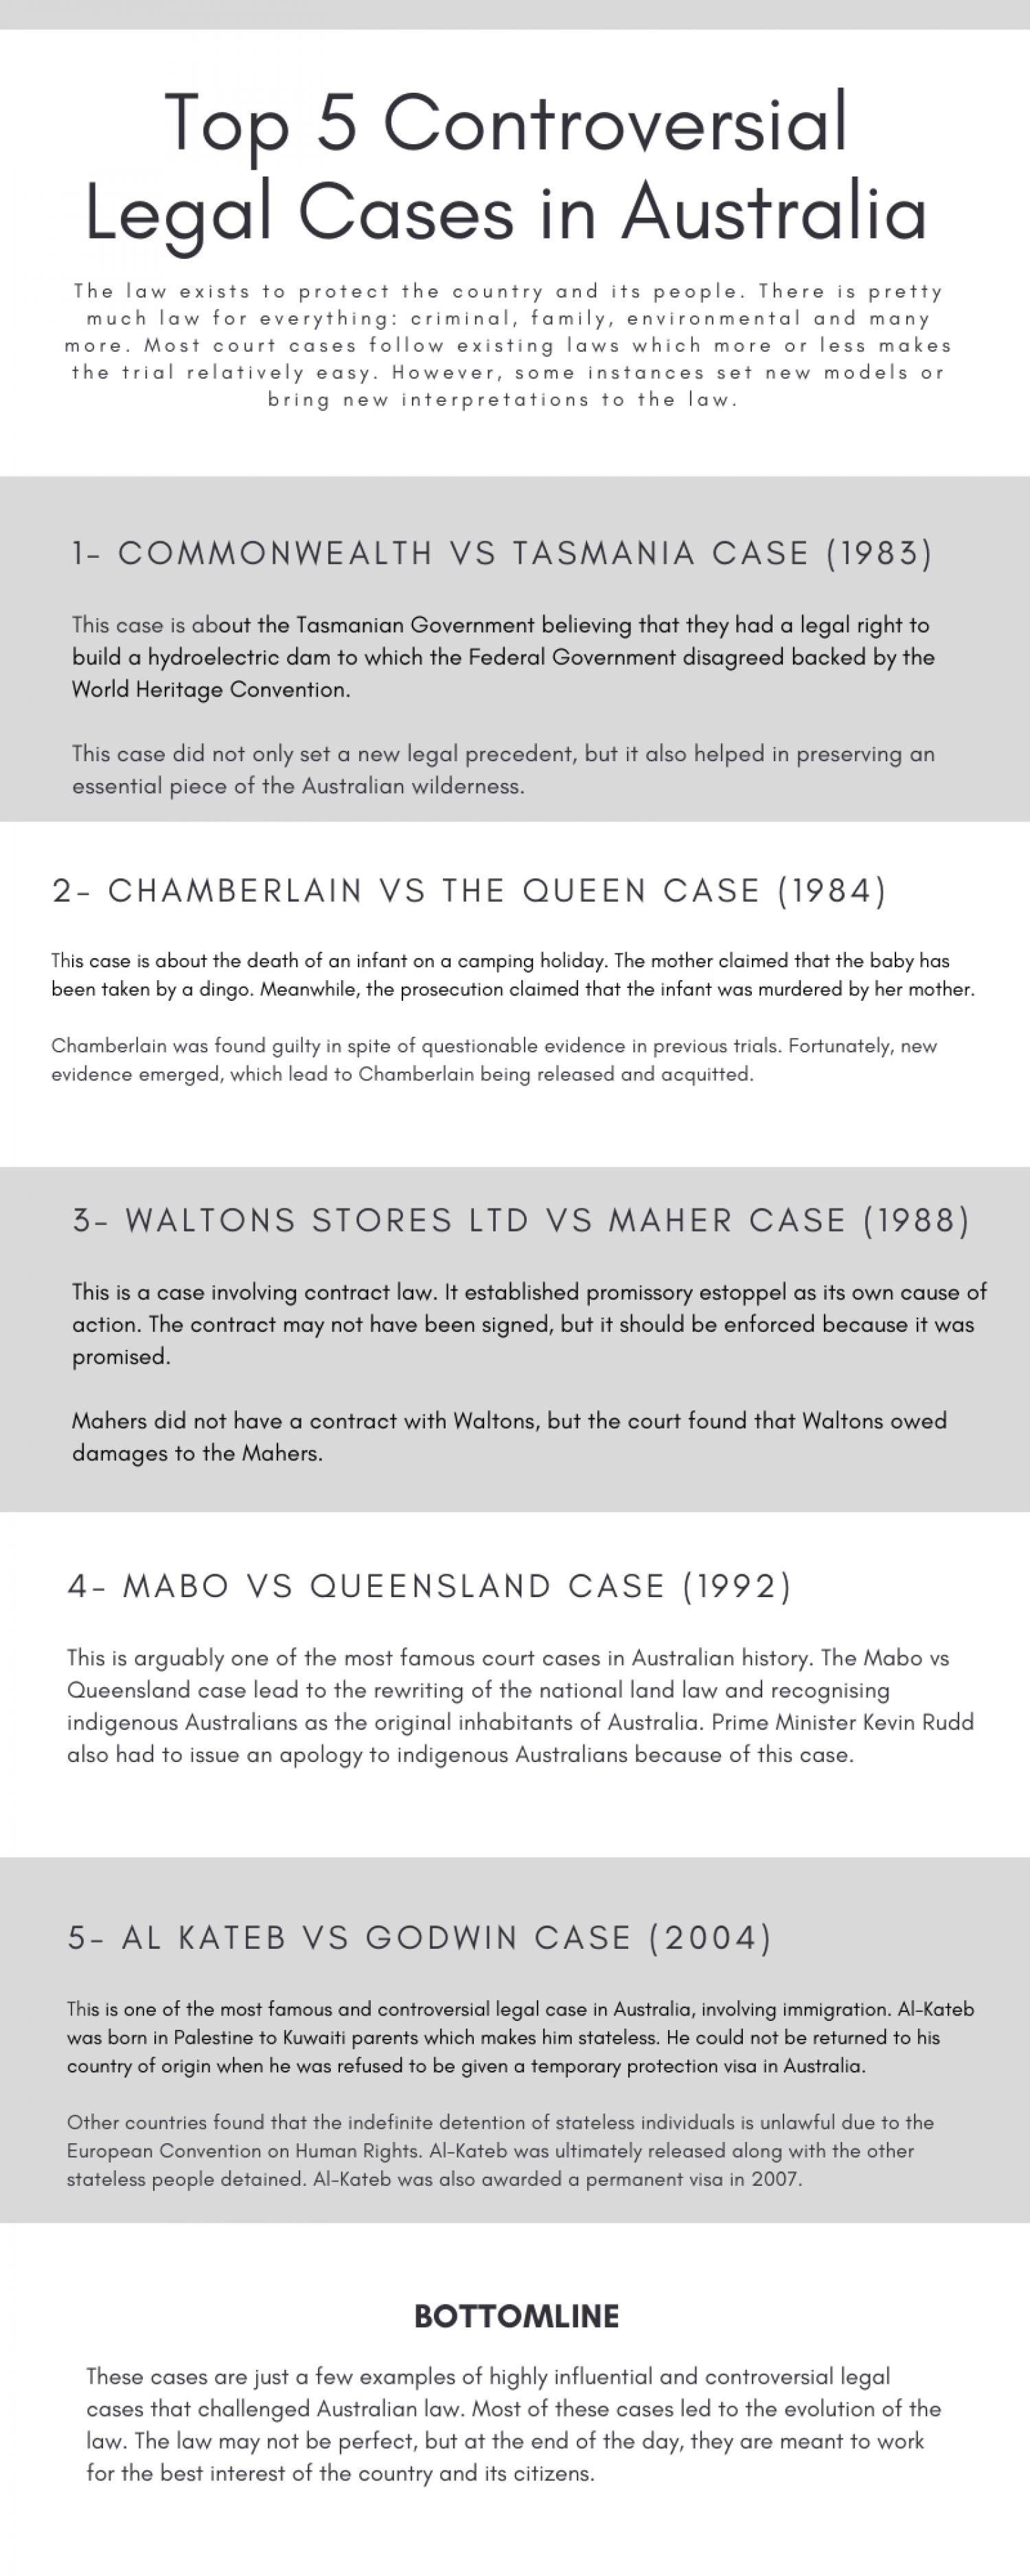 Top 5 Controversial Legal Cases in Australia Infographic